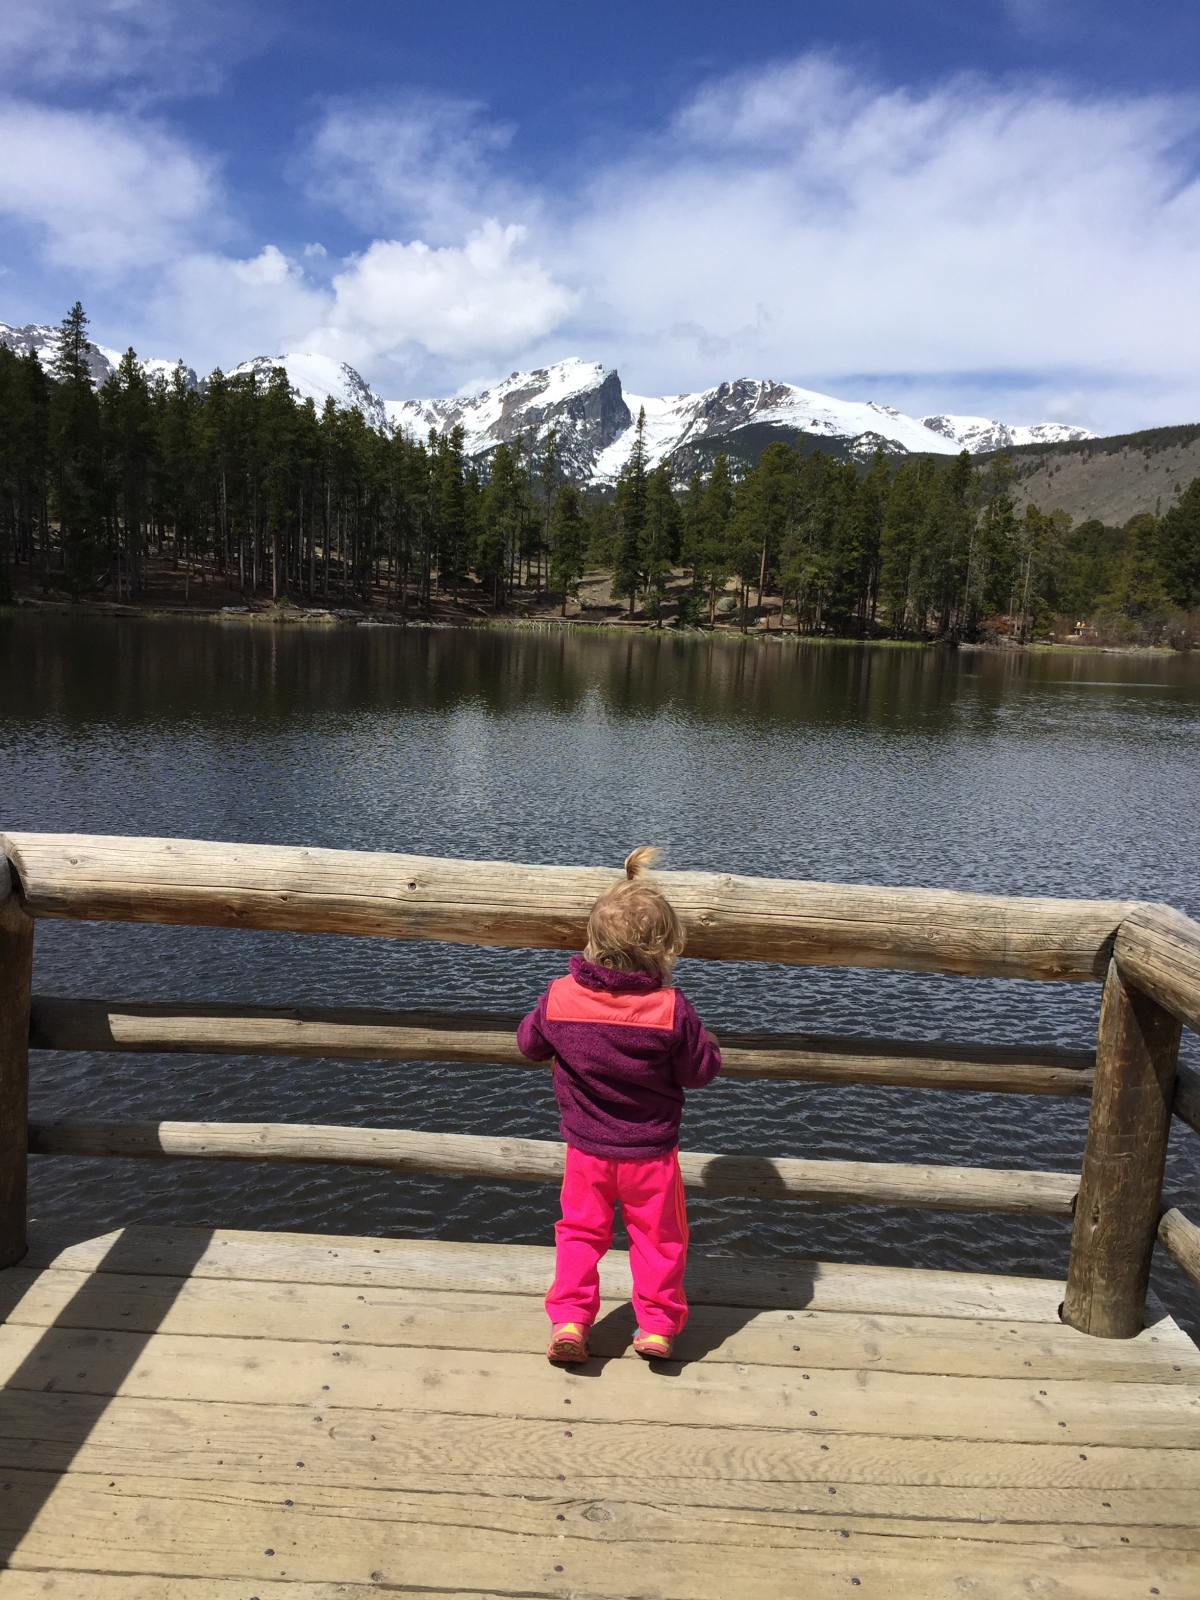 How to Reserve Camping Spots in Rocky Mountain National Park